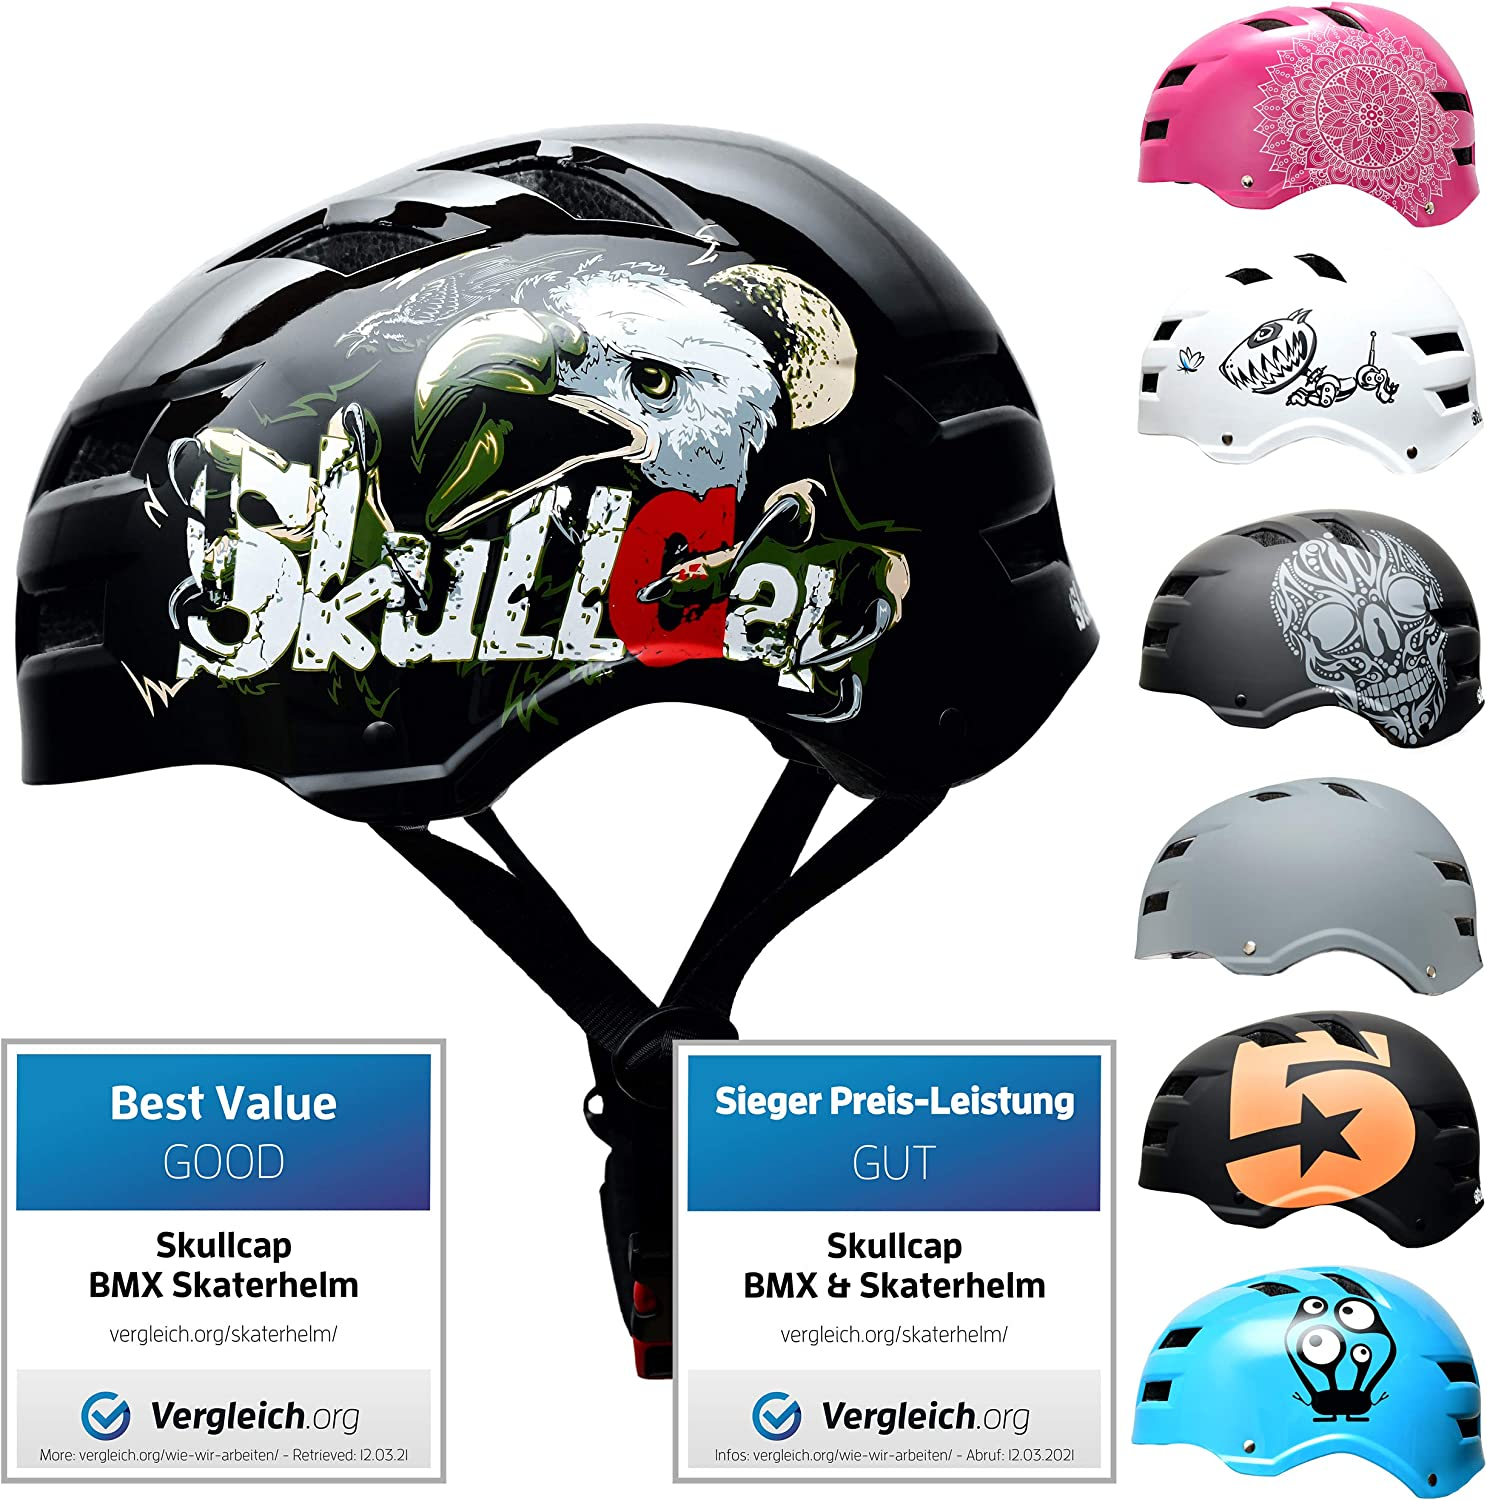 Skull-C Skateboard BMX Bike Online limited product Helmet from 6-99 Kids Max 80% OFF Adults for